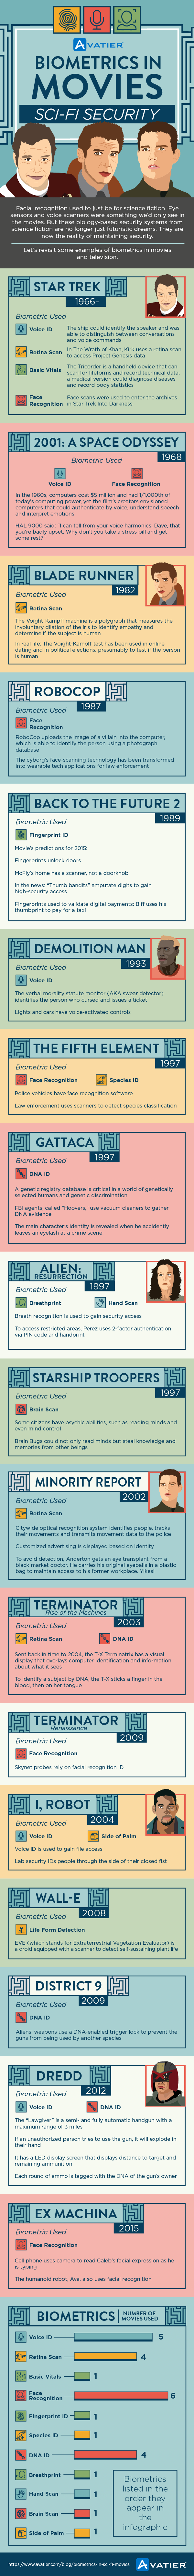 Biometrics in Movies